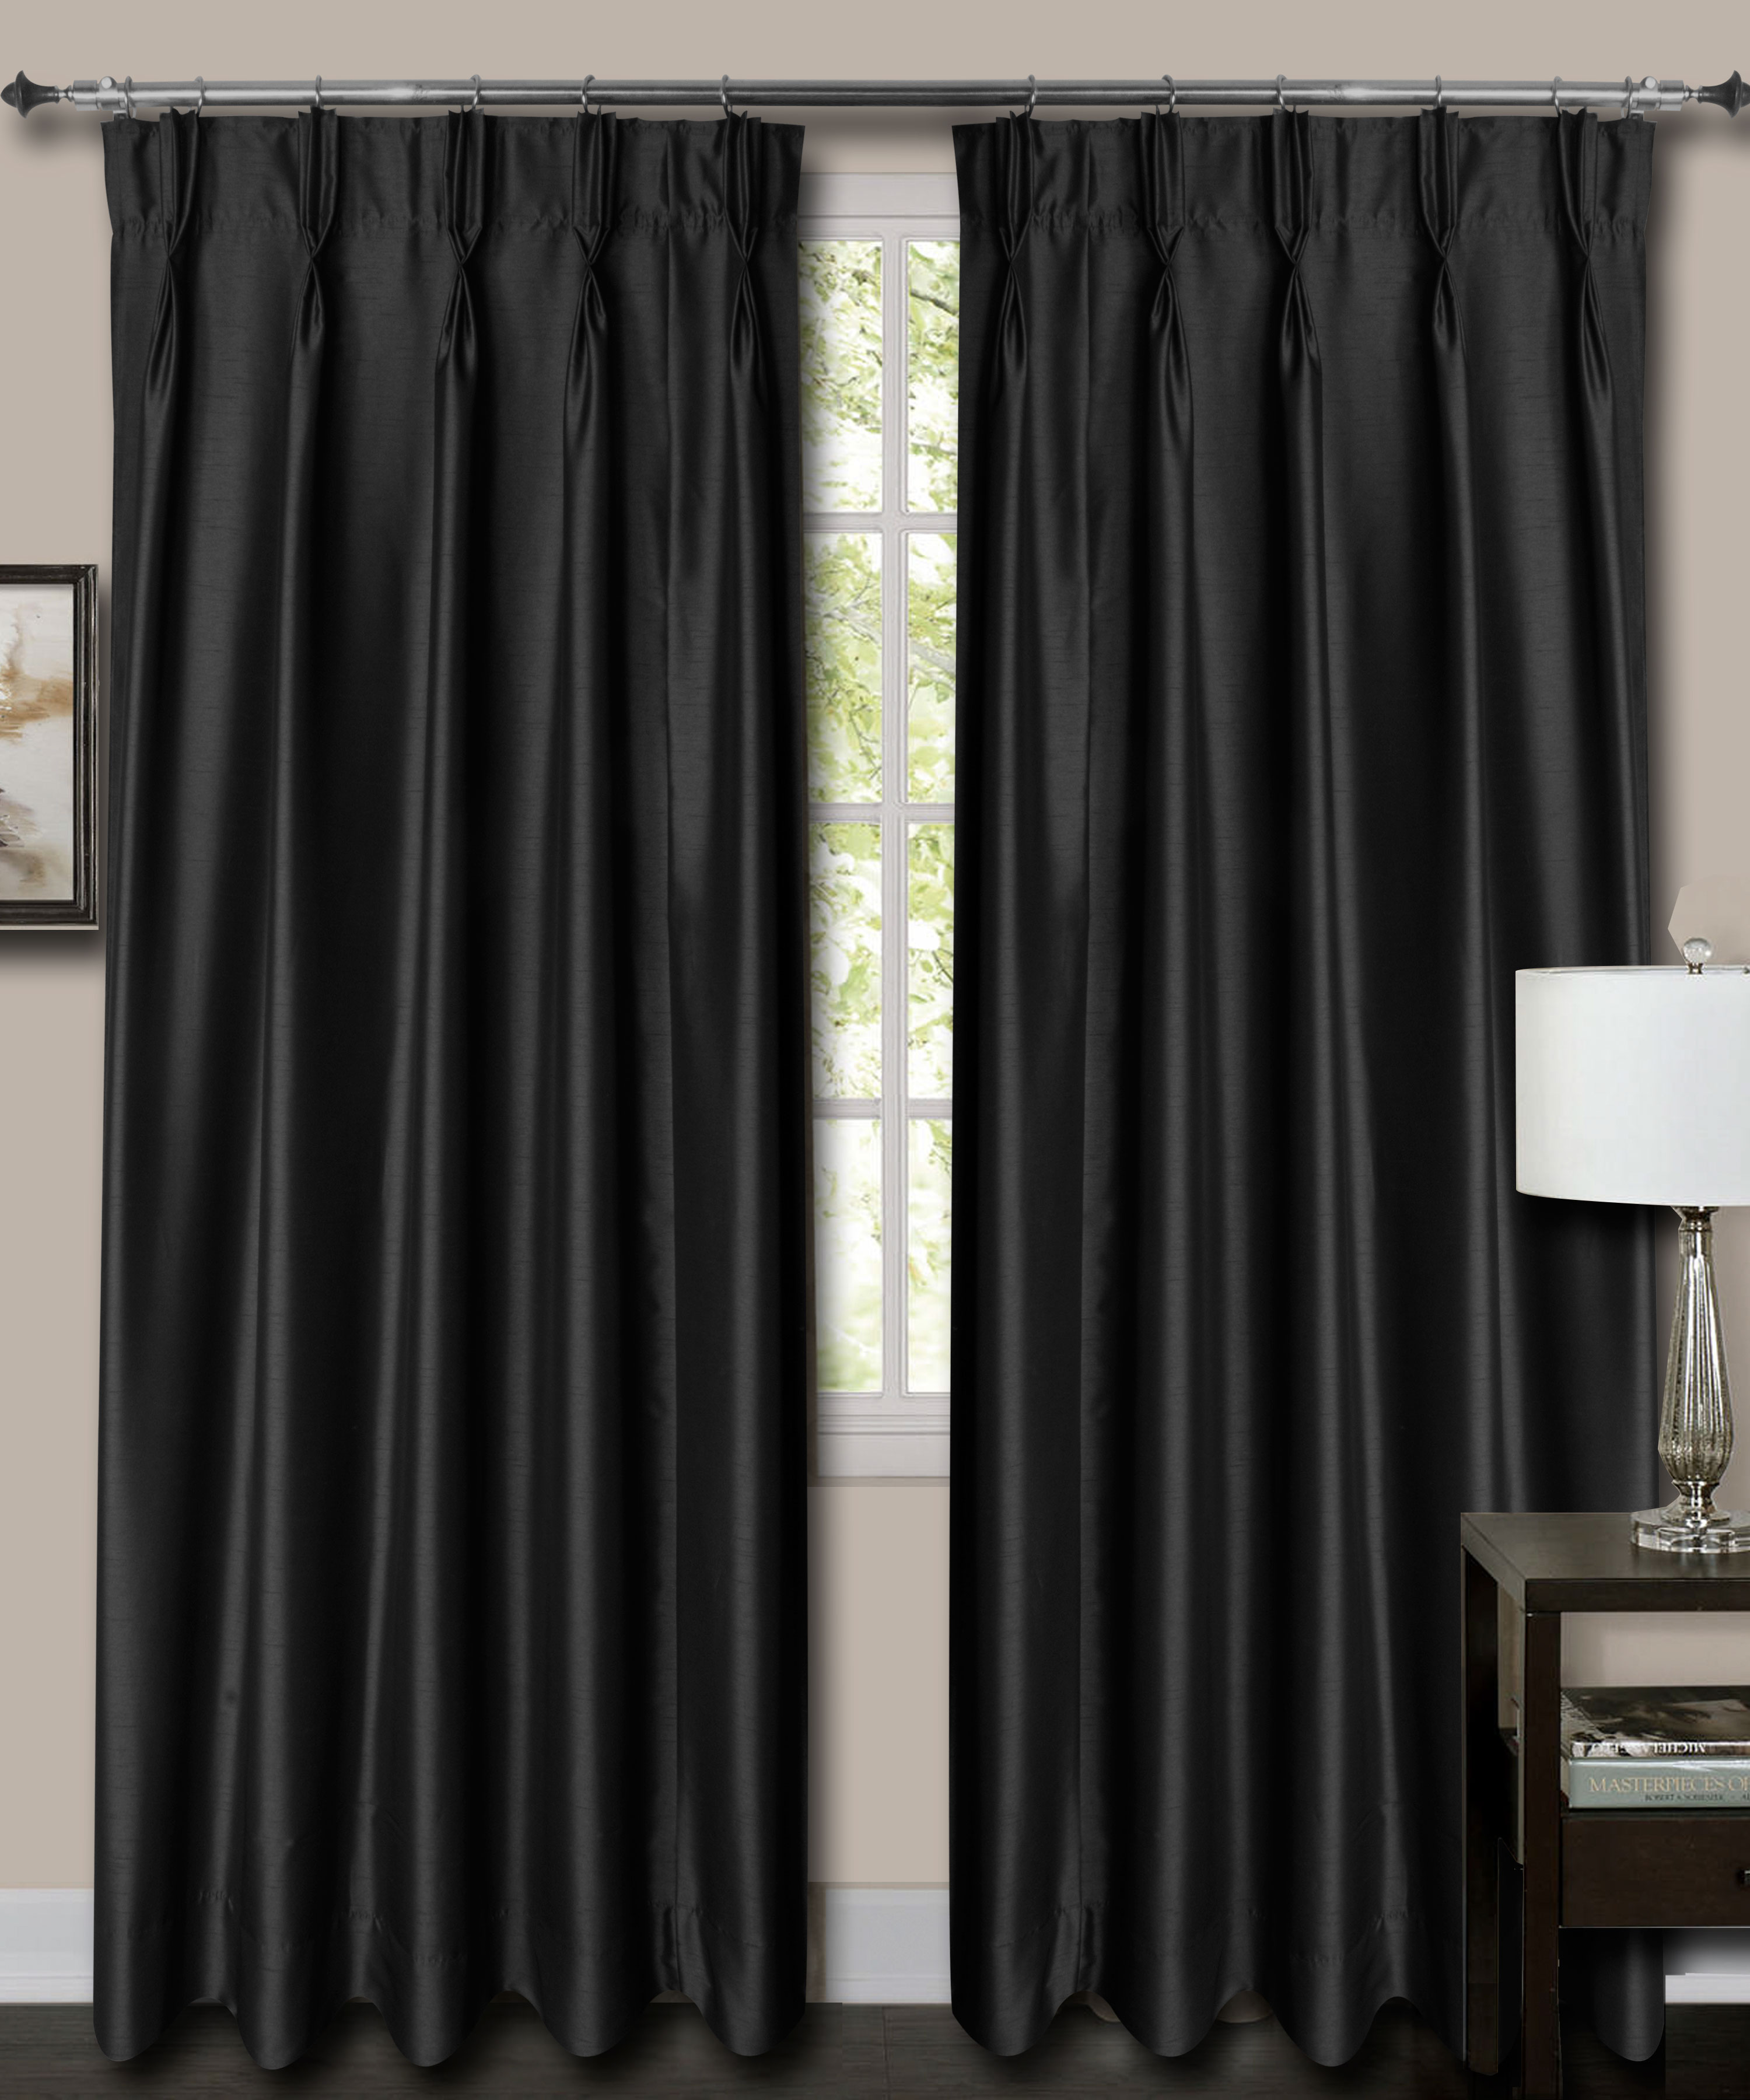 """French Pleat Top Black Faux Silk Dupioni Curtains. (24"""" Wide, 8 Feet Long, Without Lining)"""